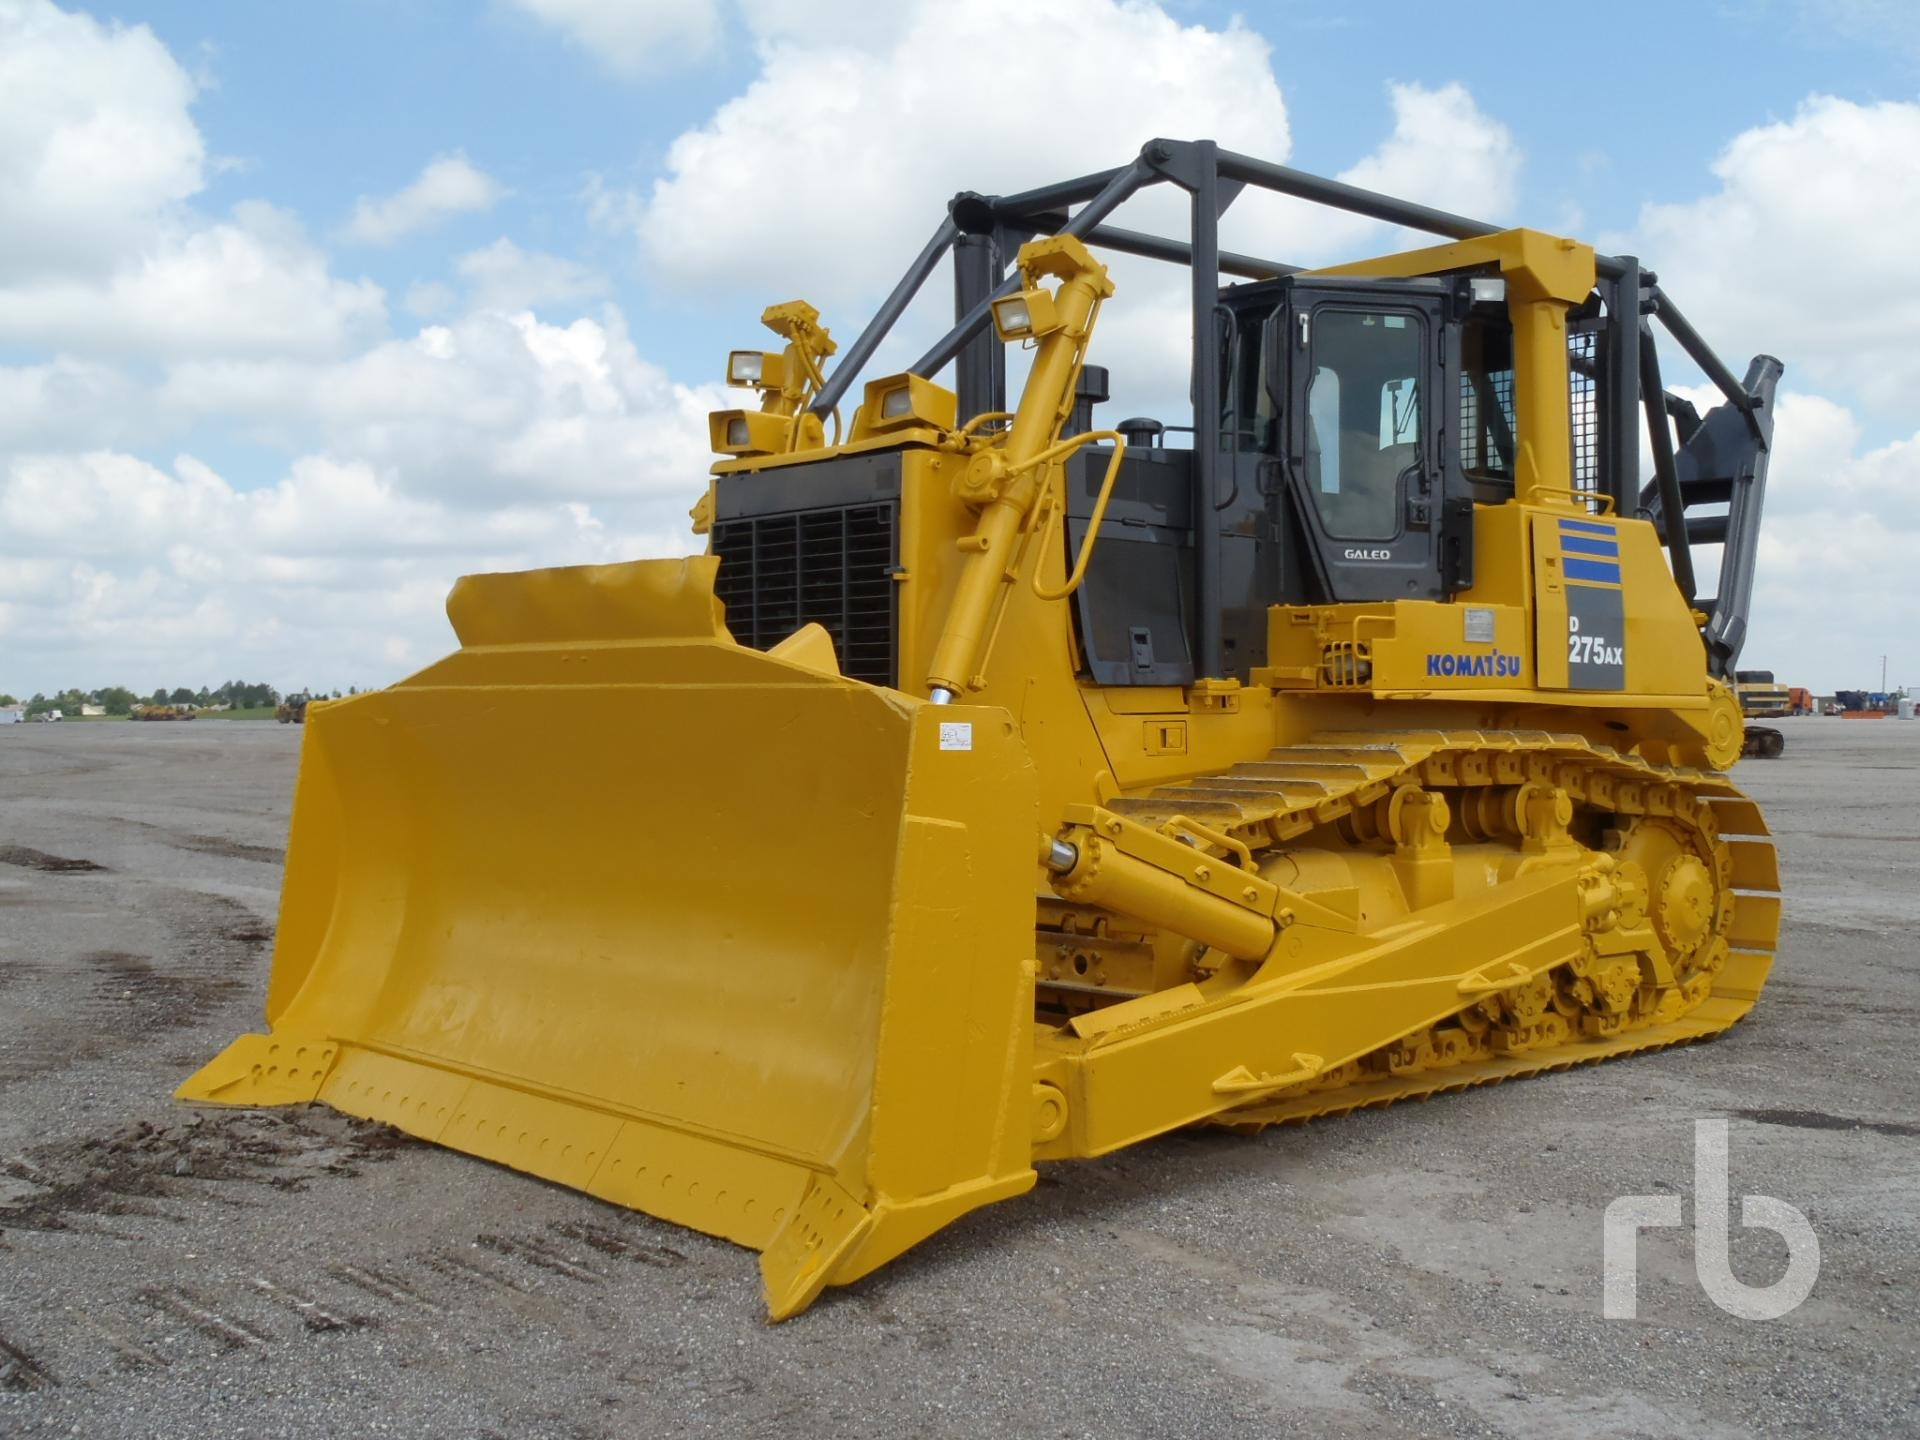 Caterpillar d9 photo - 3